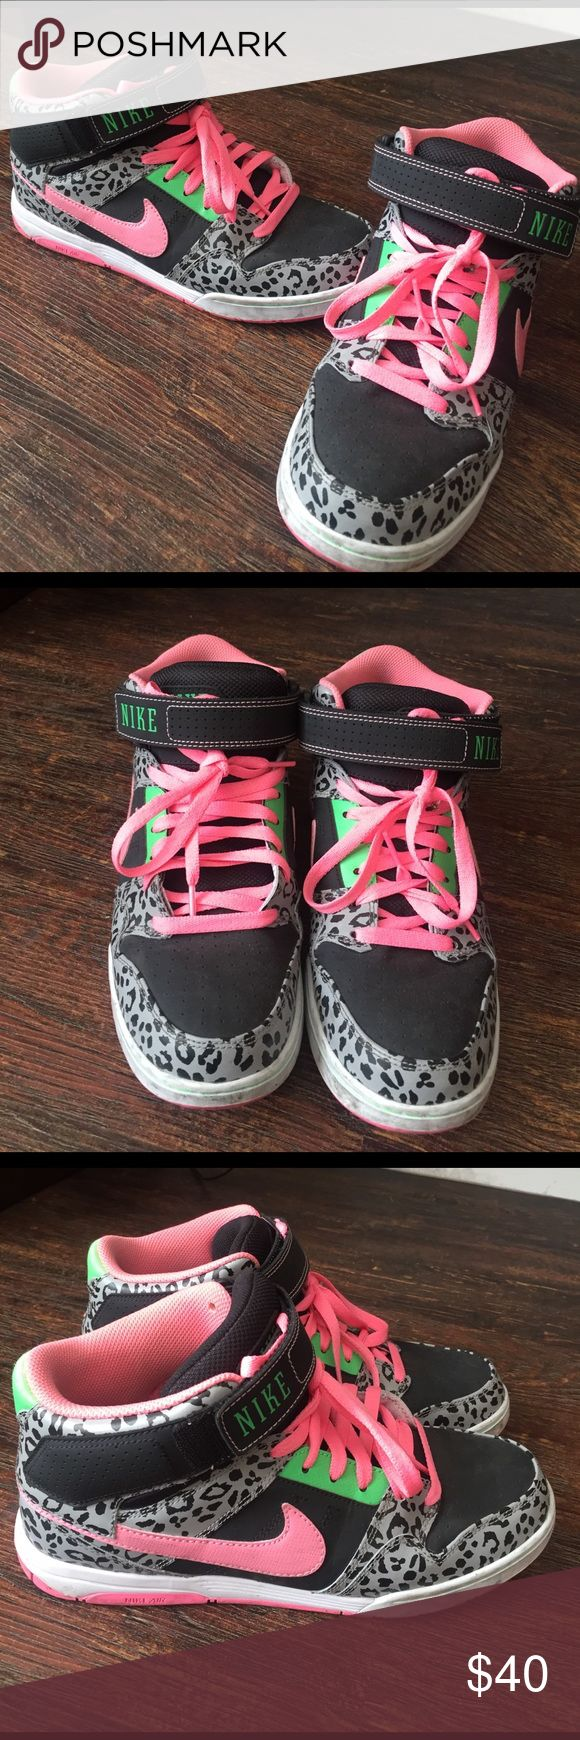 Nike leopard print High tops --- vibrant pink and green highlights Nike Shoes Sneakers